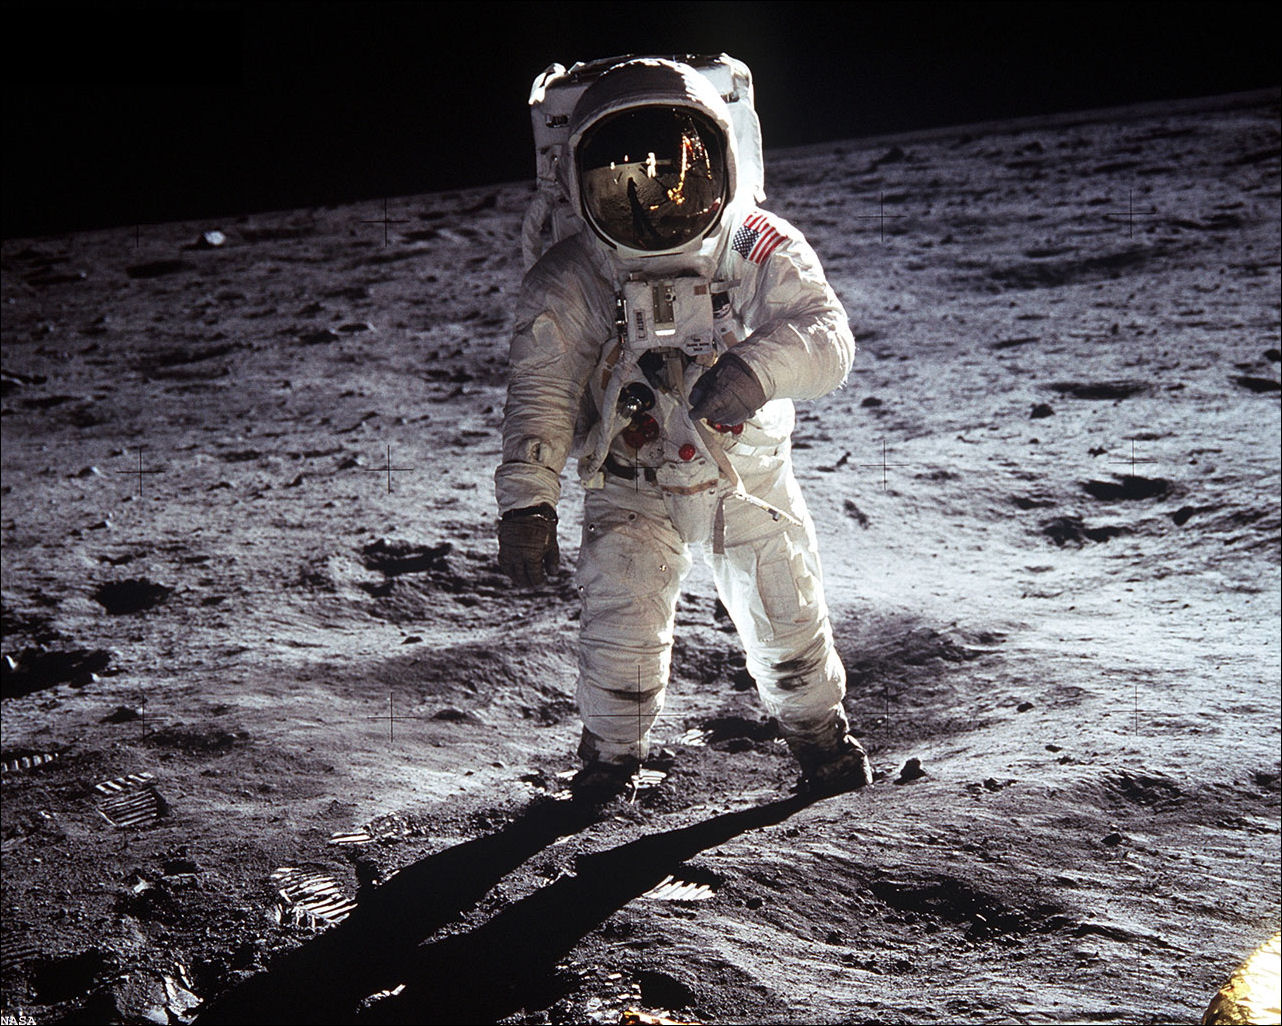 apollo 11 moon landing first step - photo #16